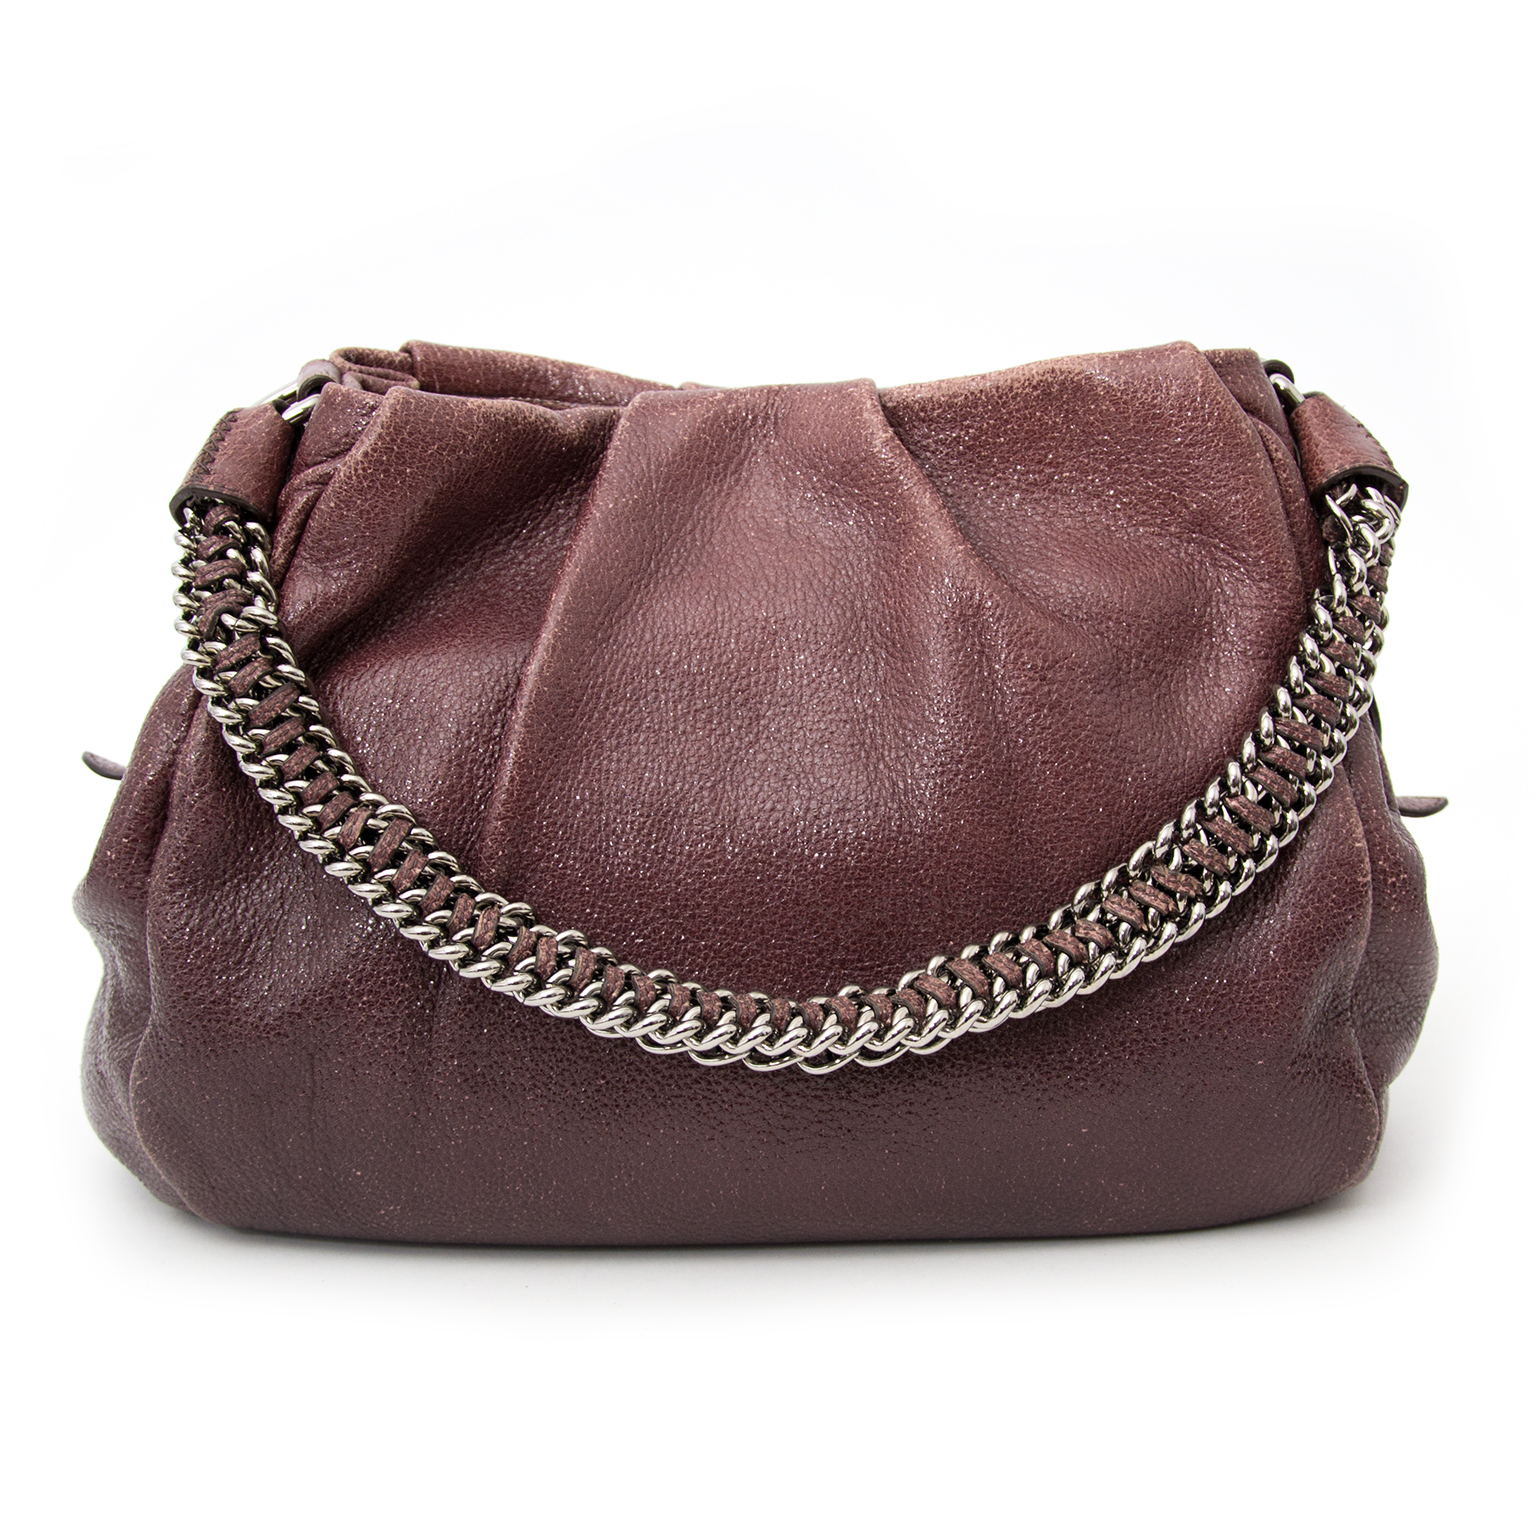 The prada Aubergine Shopper Bag now available in the showroom in Antwerp at the best price.